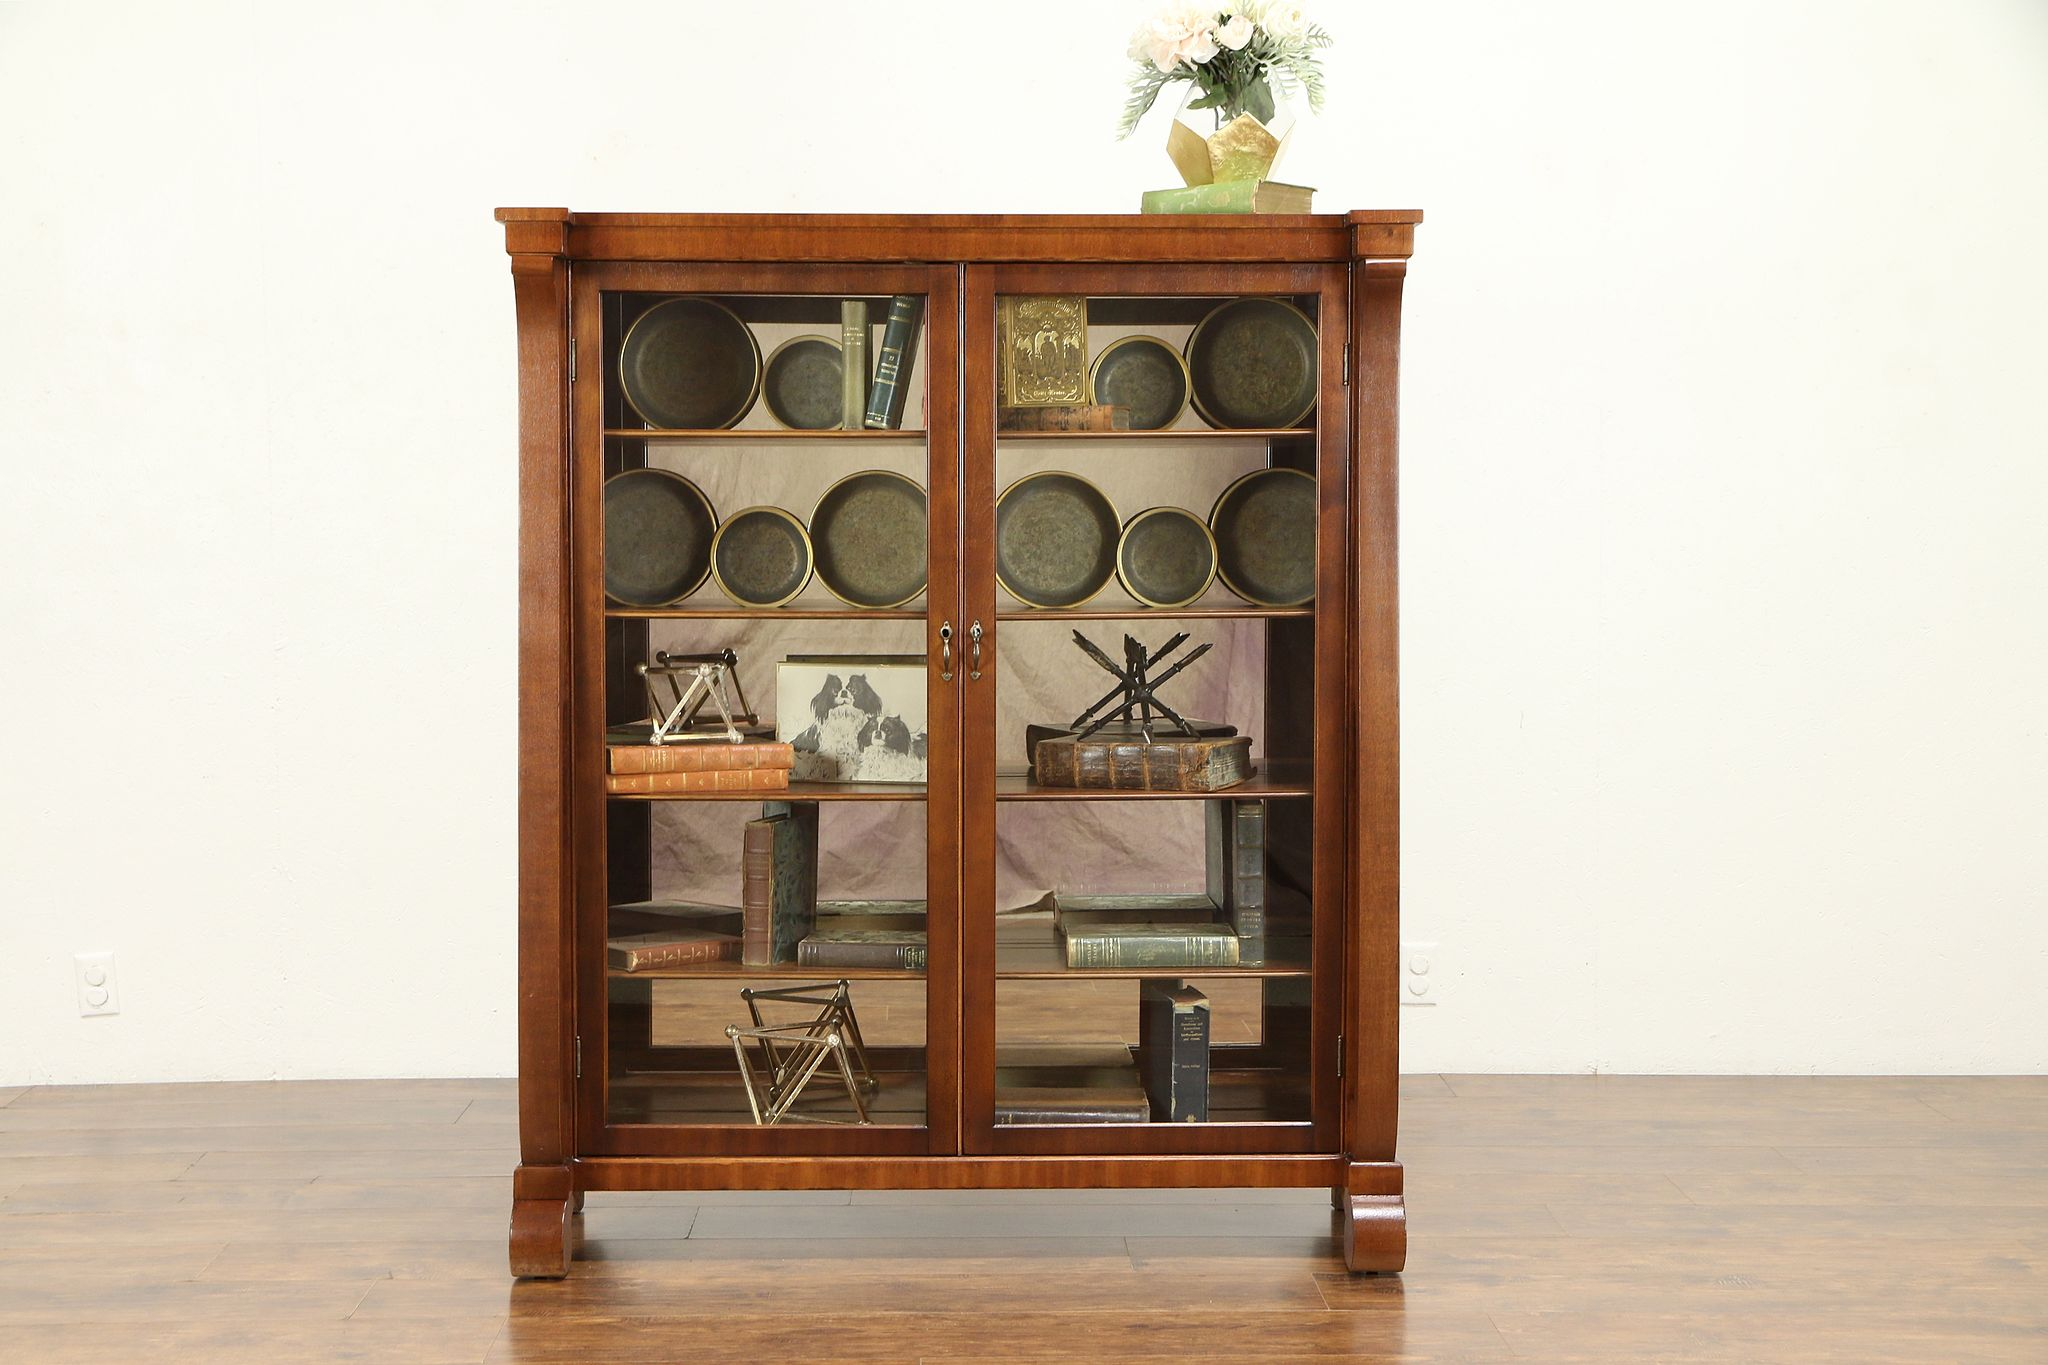 Sold Empire Antique Mahogany Bookcase Or Curio Cabinet Glass Doors Mirrors 30921 Harp Gallery Antiques Furniture